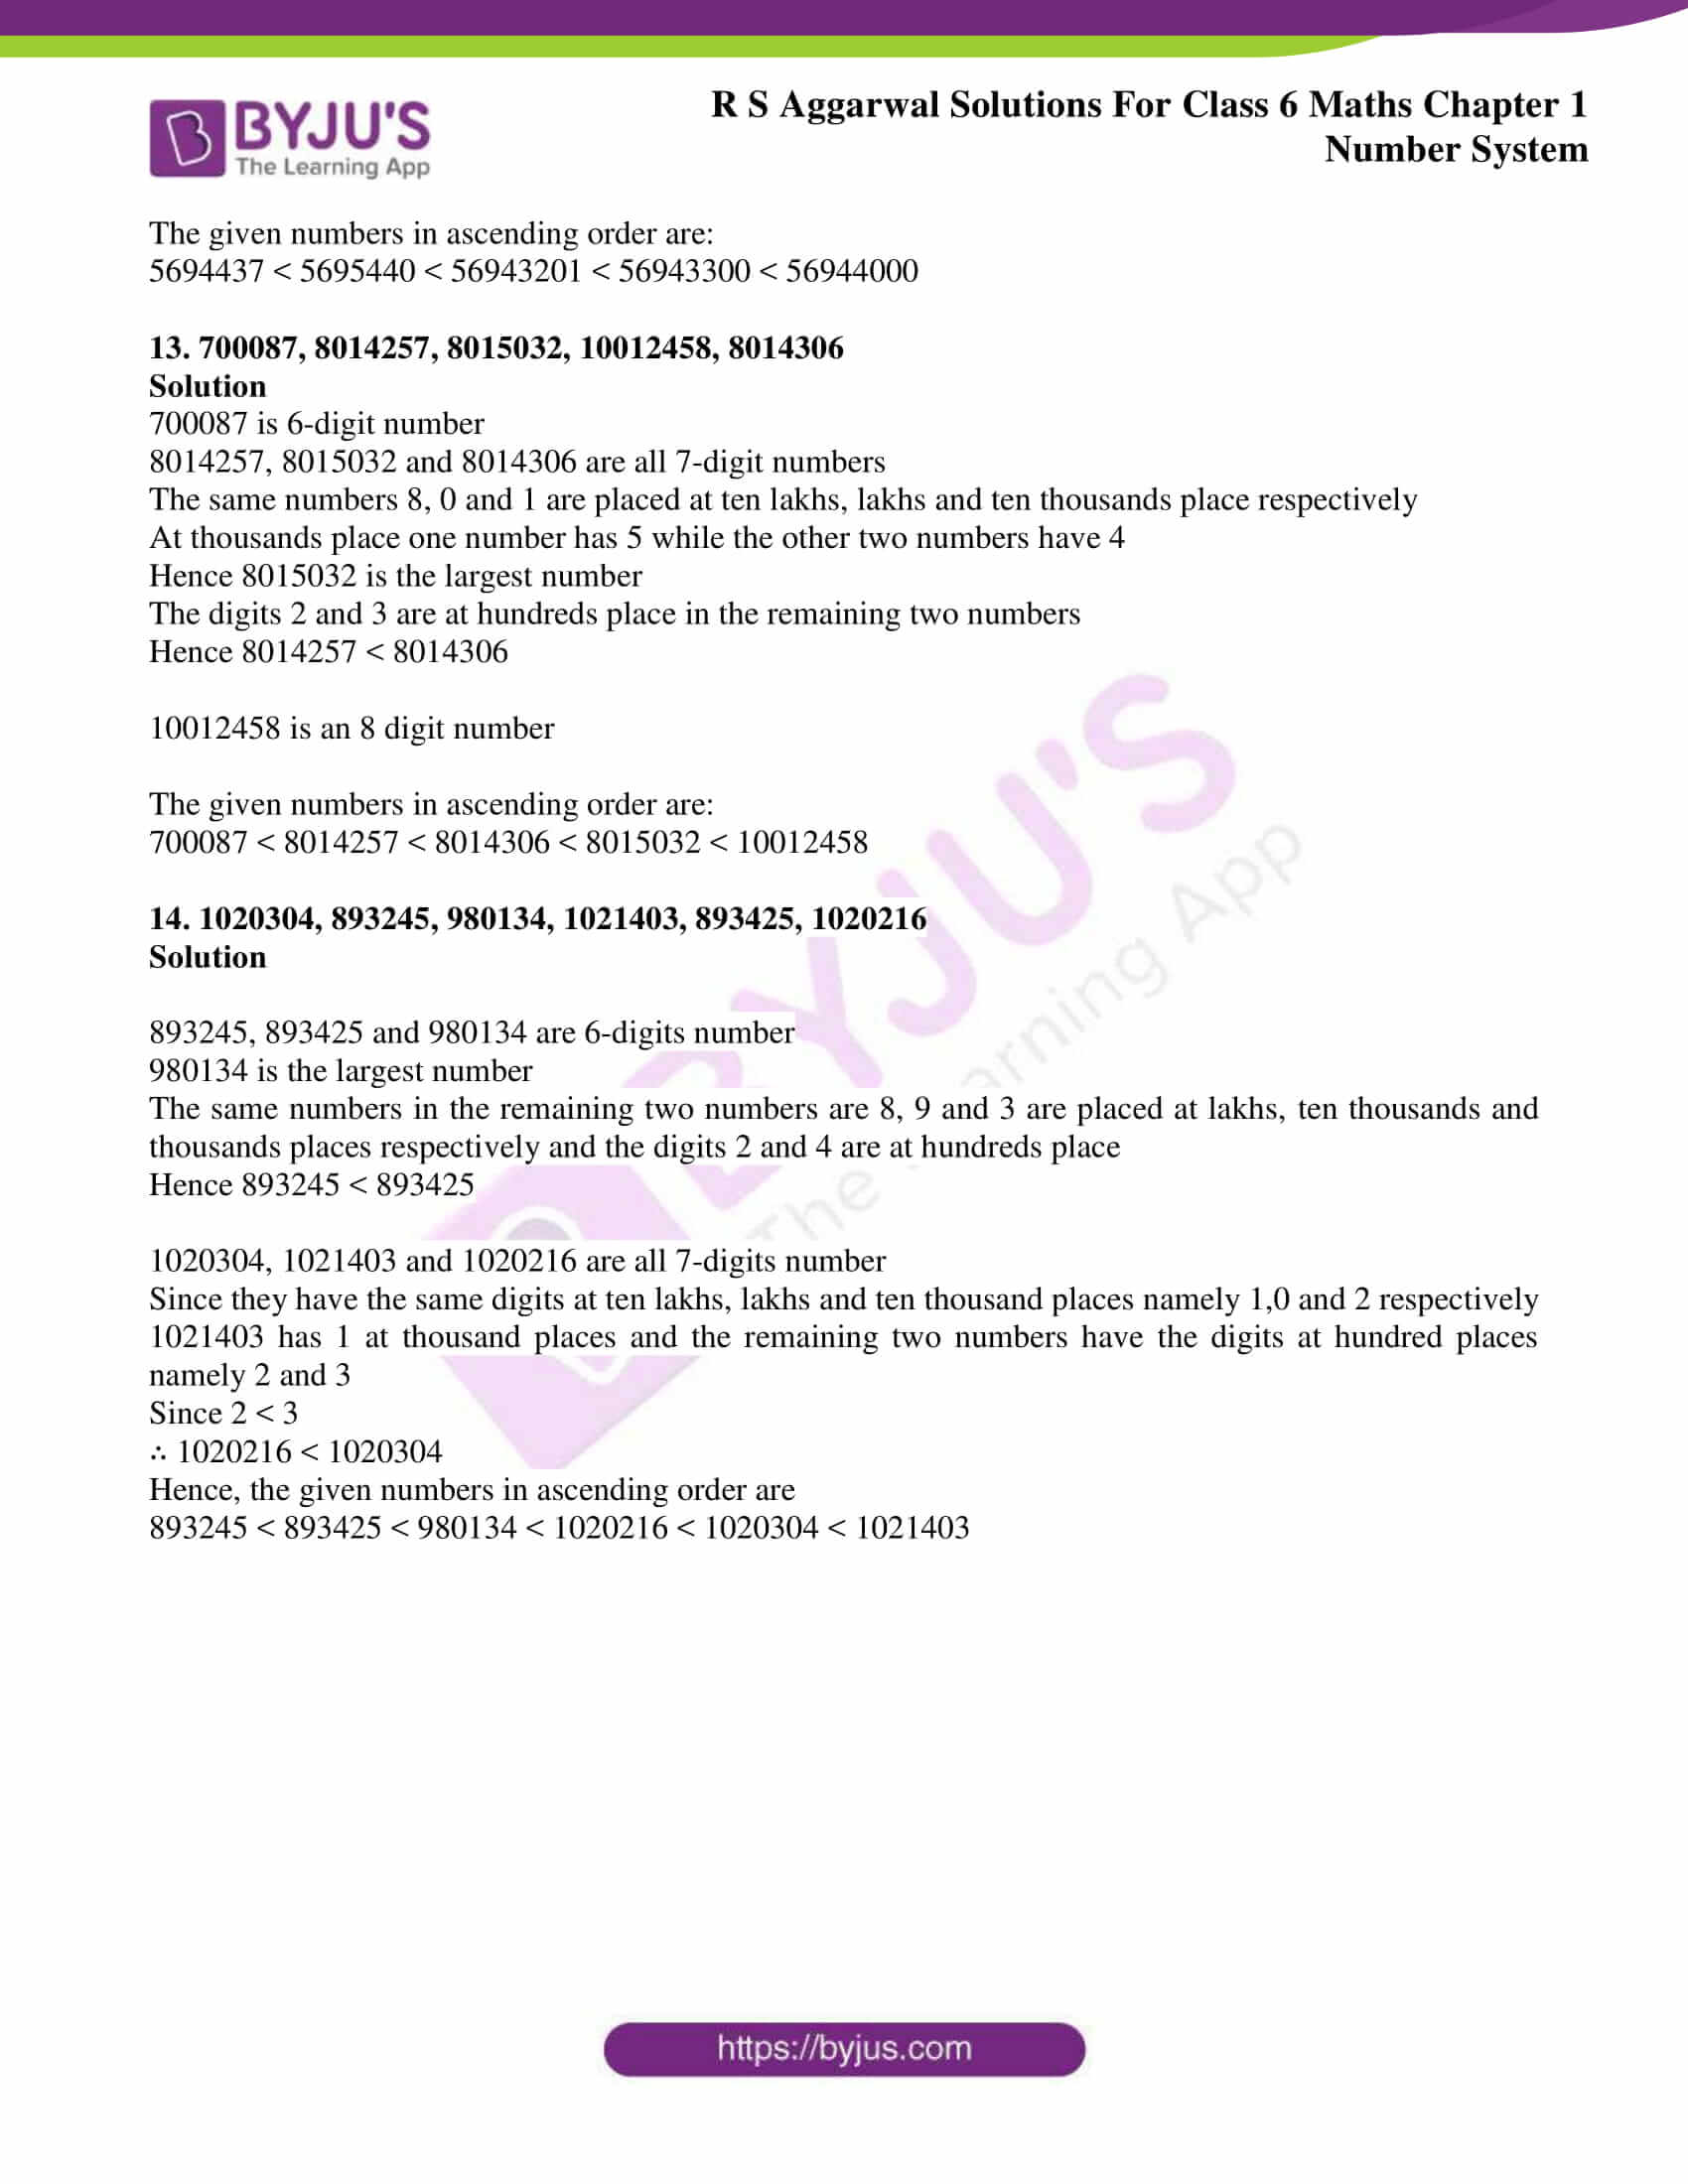 rs aggarwal solution class 6 maths chapter 1